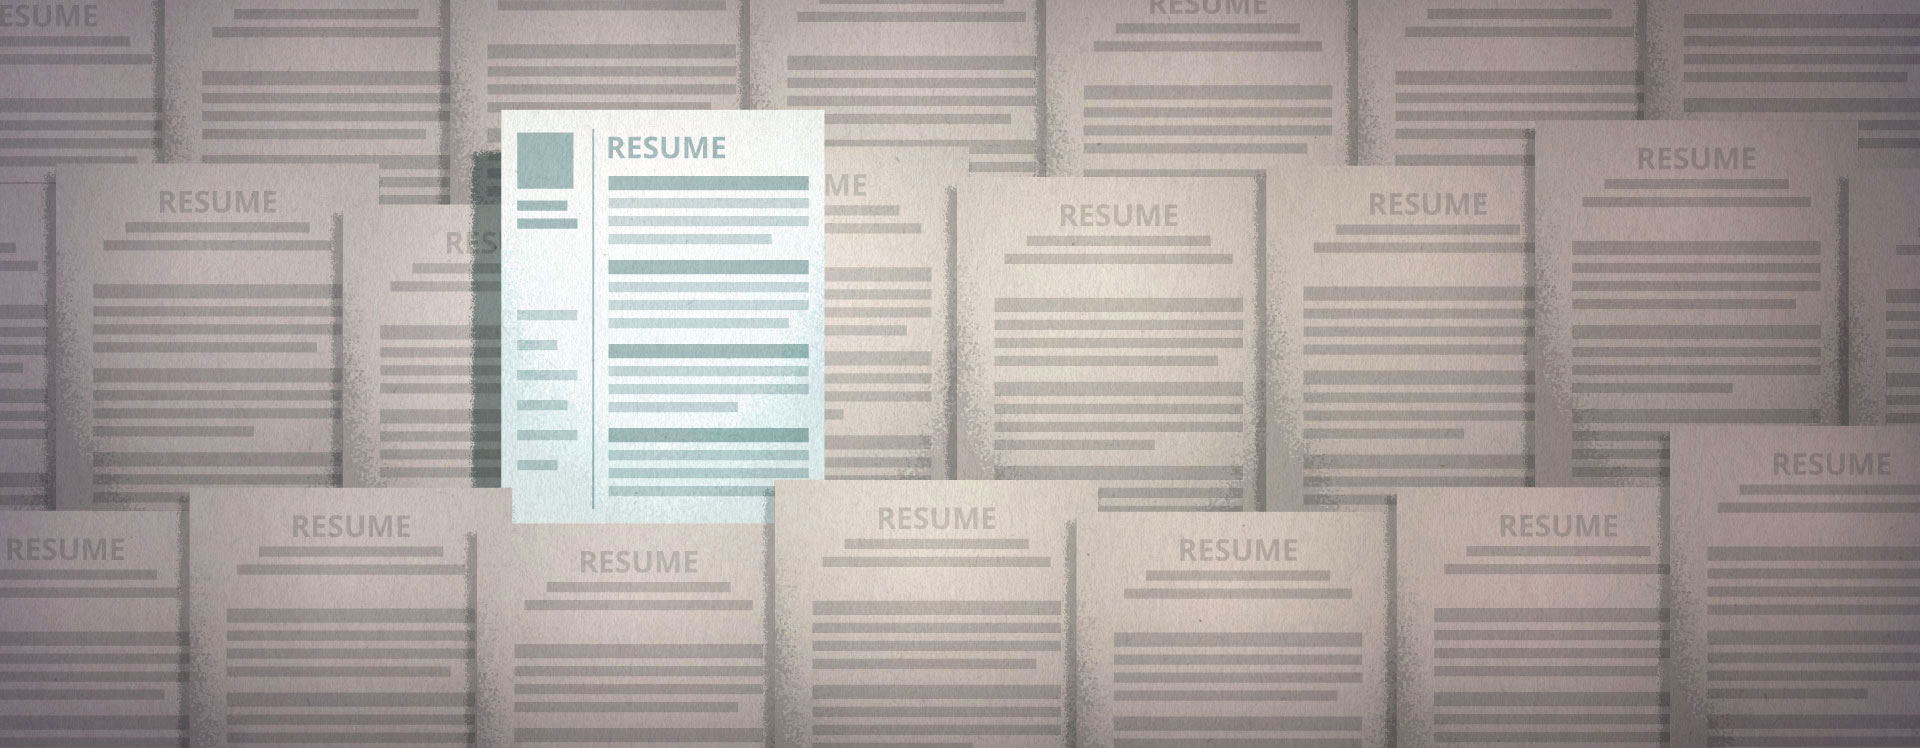 data science resume - Data Science Resume